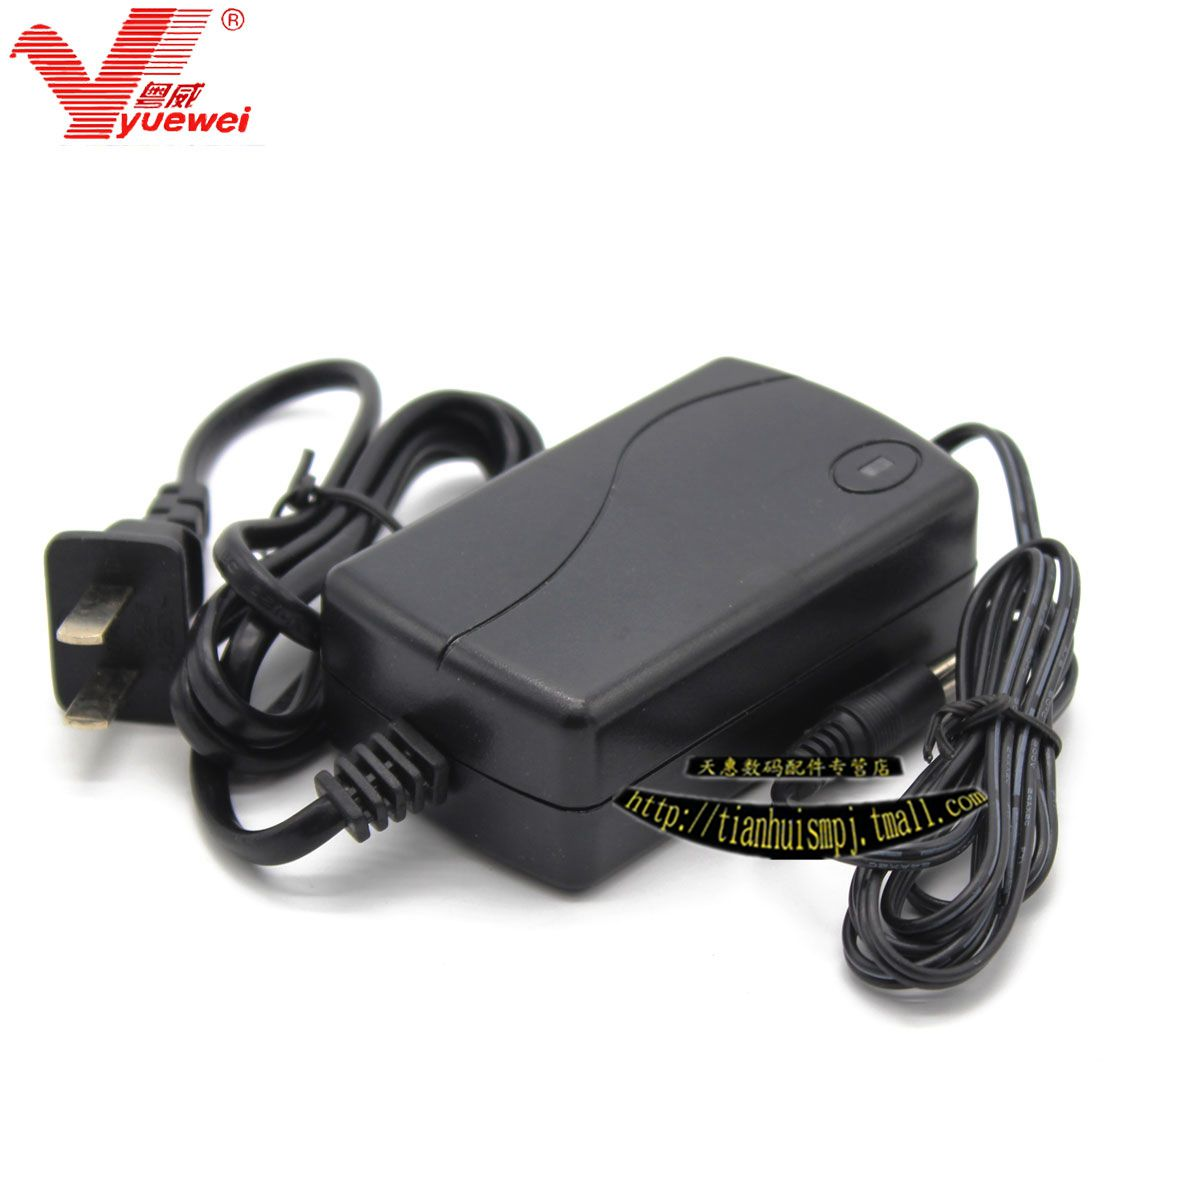 Guangdong Wei YW-18W5V2A transformer power supply 5V2A power adapter with overload protection 3C certification double line